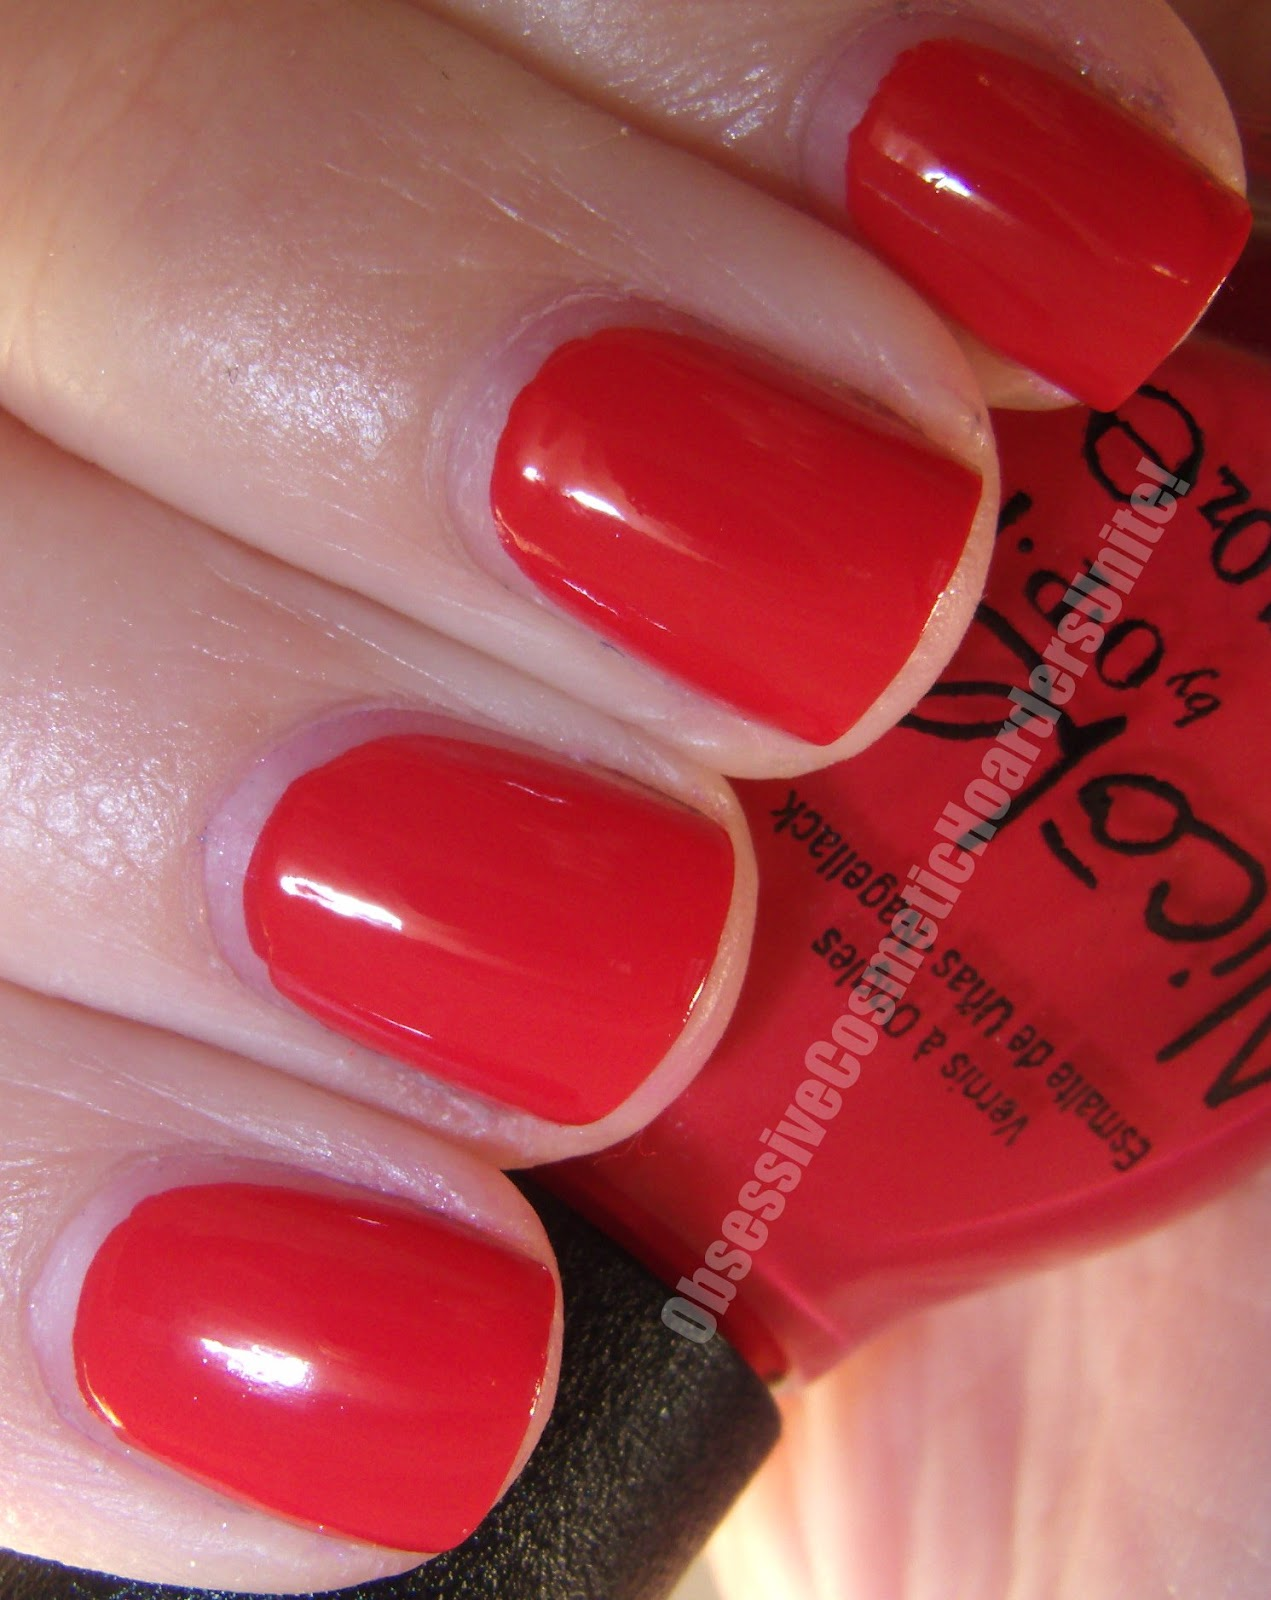 Obsessive Cosmetic Hoarders Unite!: New Nicole By OPI Nail Lacquers ...